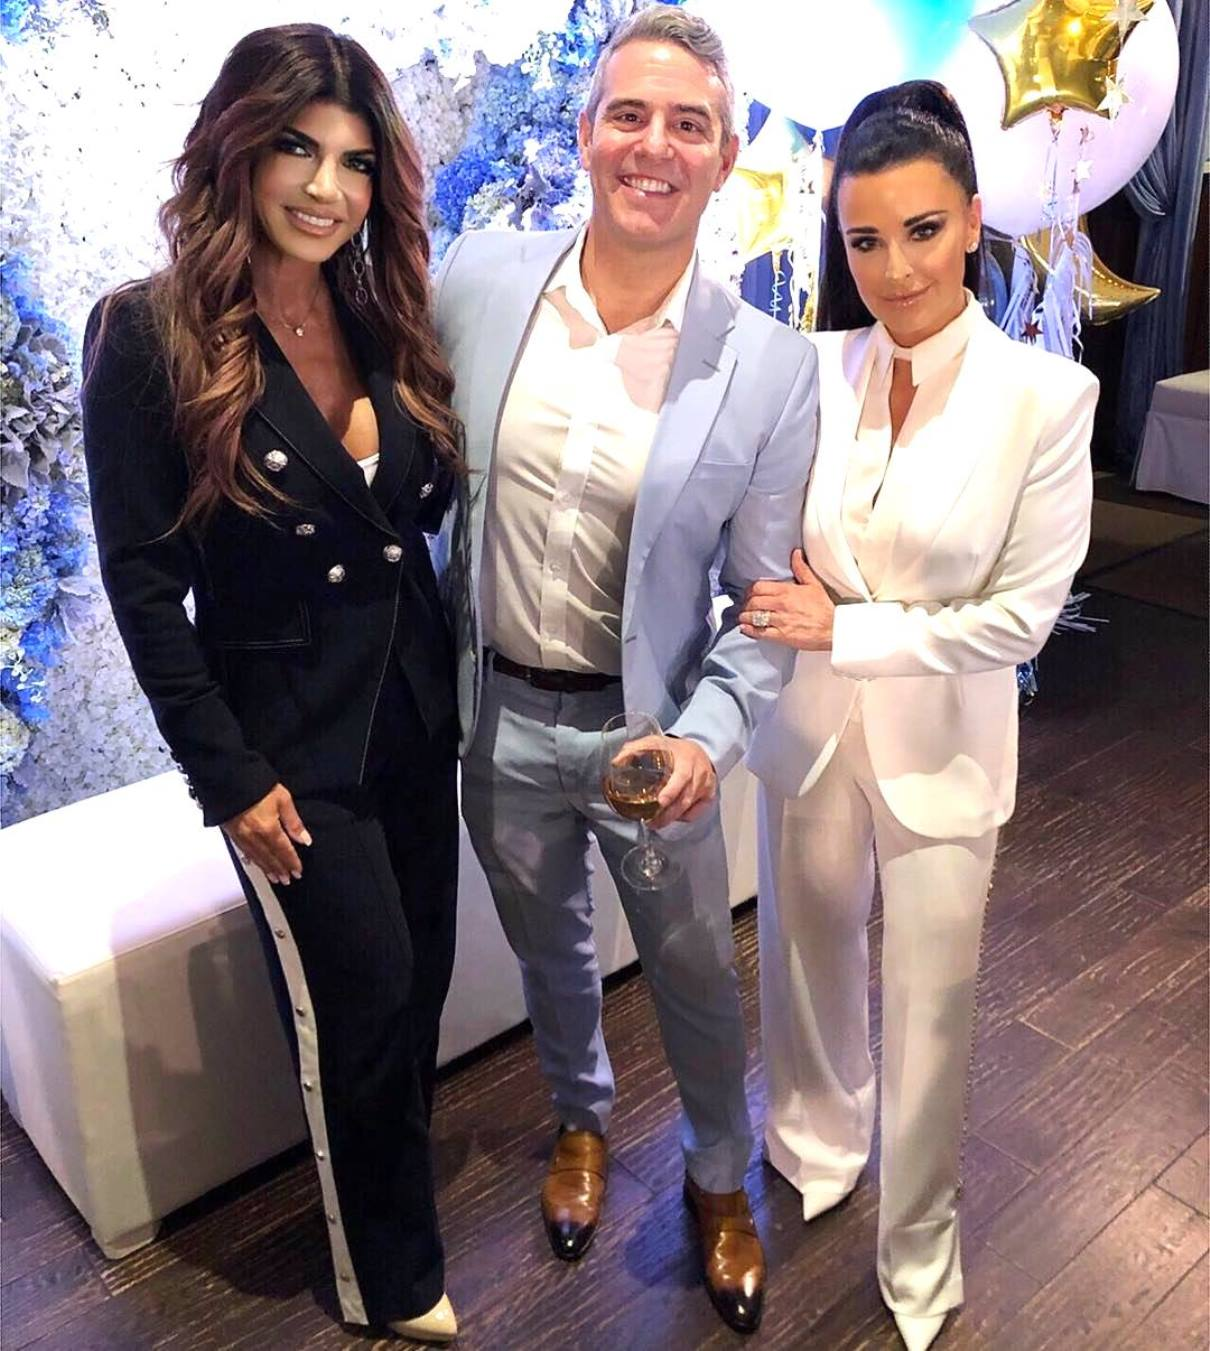 PHOTOS: Andy Cohen Celebrates Baby Shower with over 30 Housewives Teresa Giudice and Kyle Richards